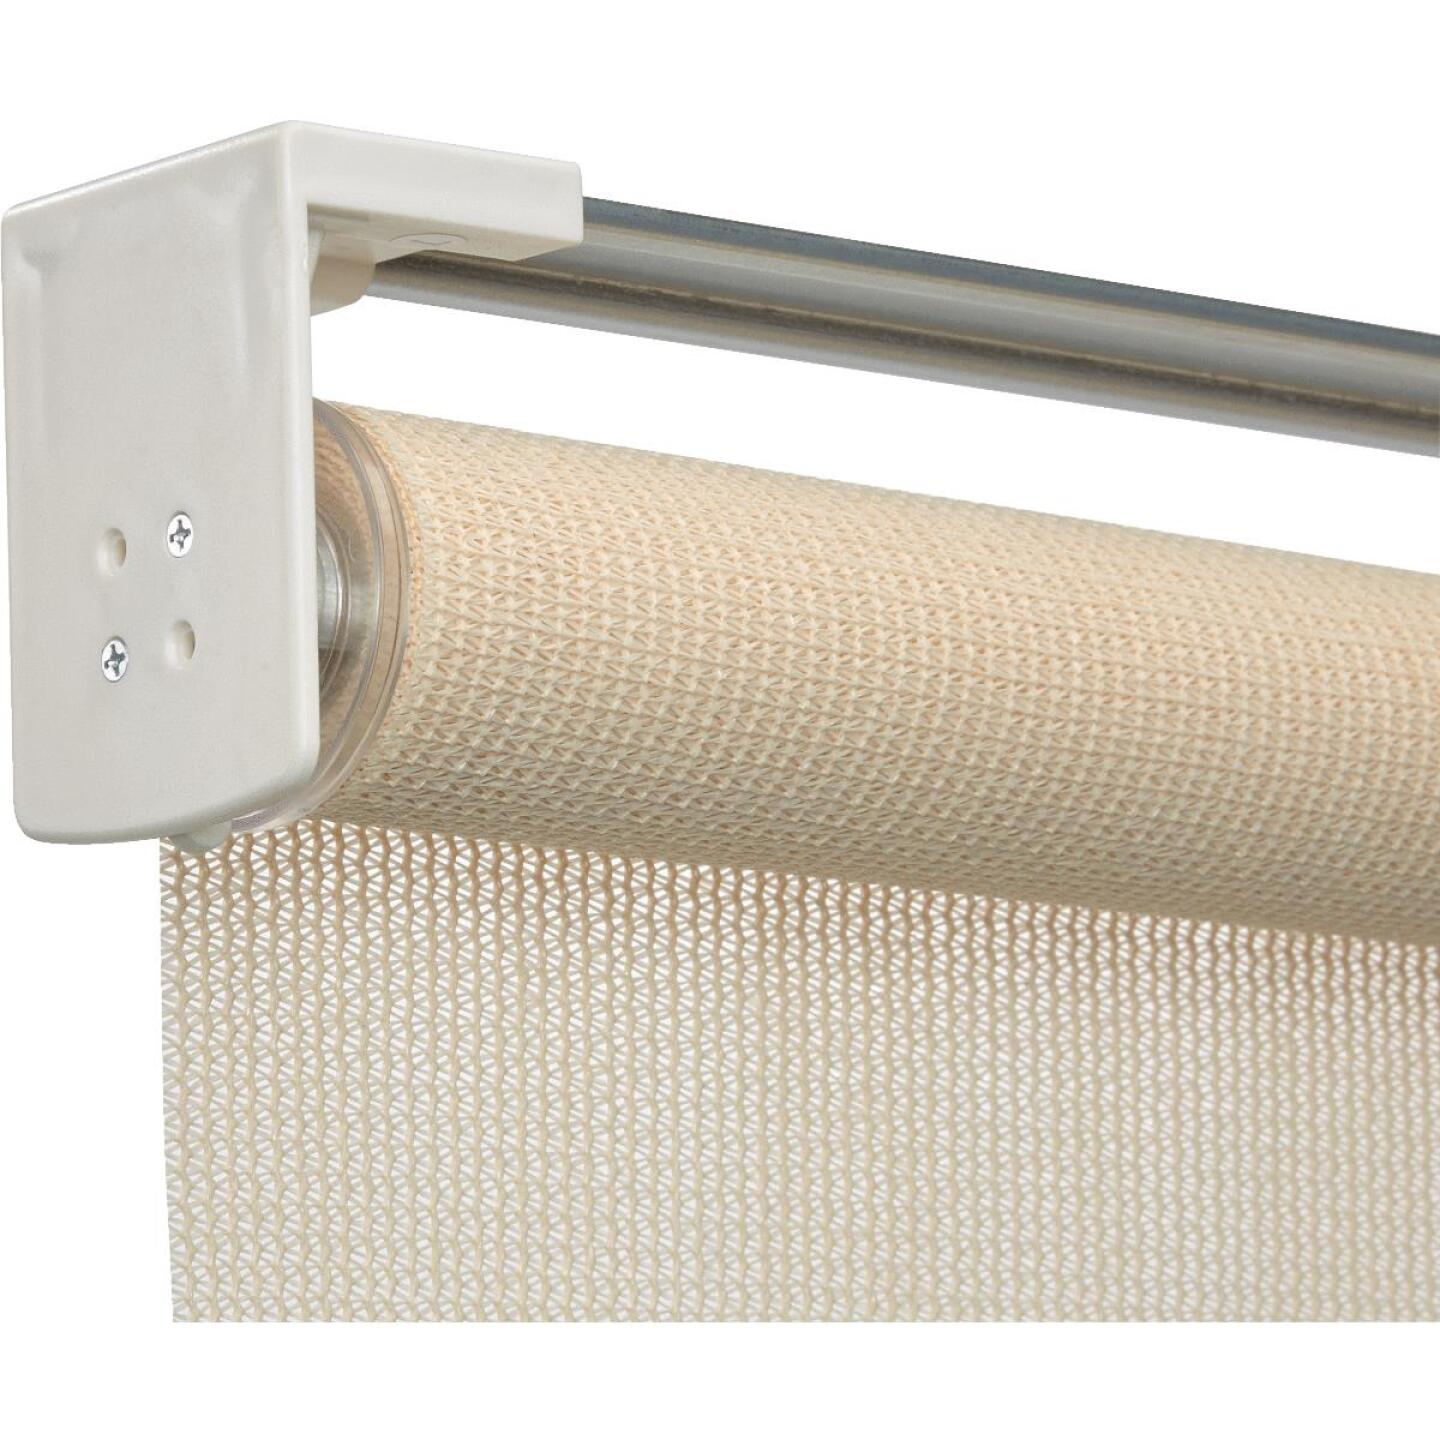 Home Impressions 72 In. x 72 In. Ivory Fabric Indoor/Outdoor Cordless Roller Shade Image 3